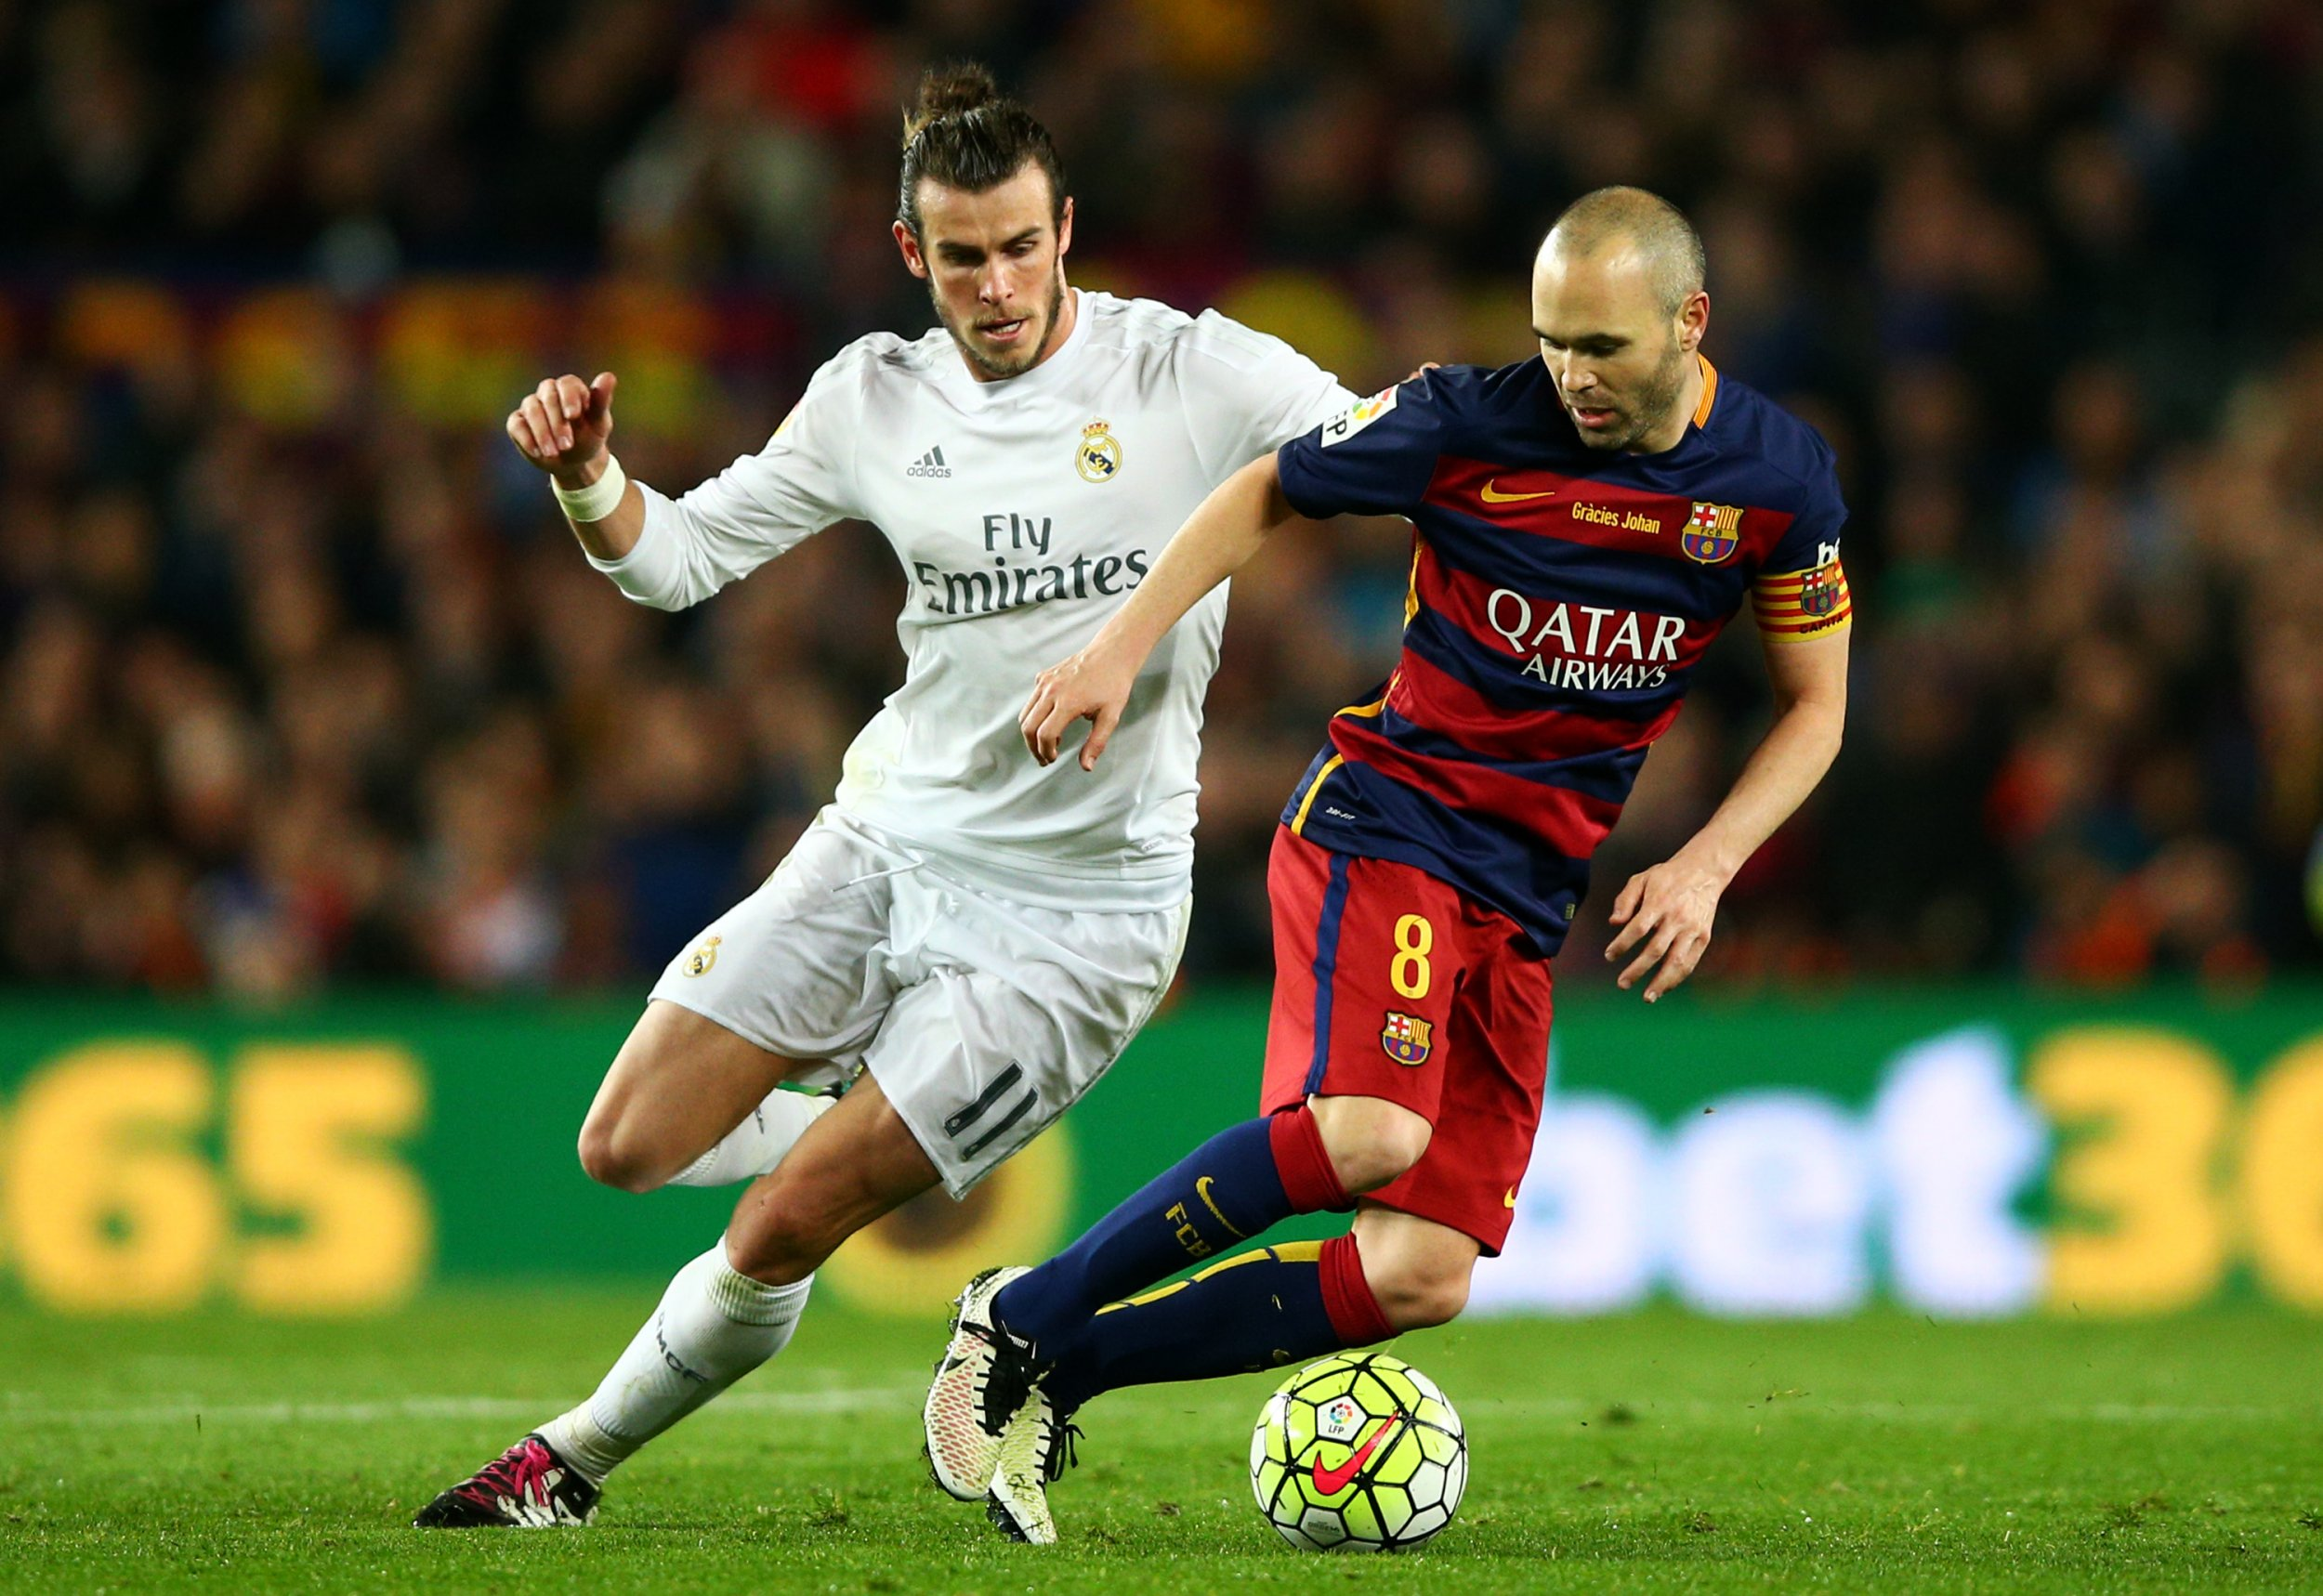 Real Madrid's Gareth Bale, left, with Barcelona's Andres Iniesta.